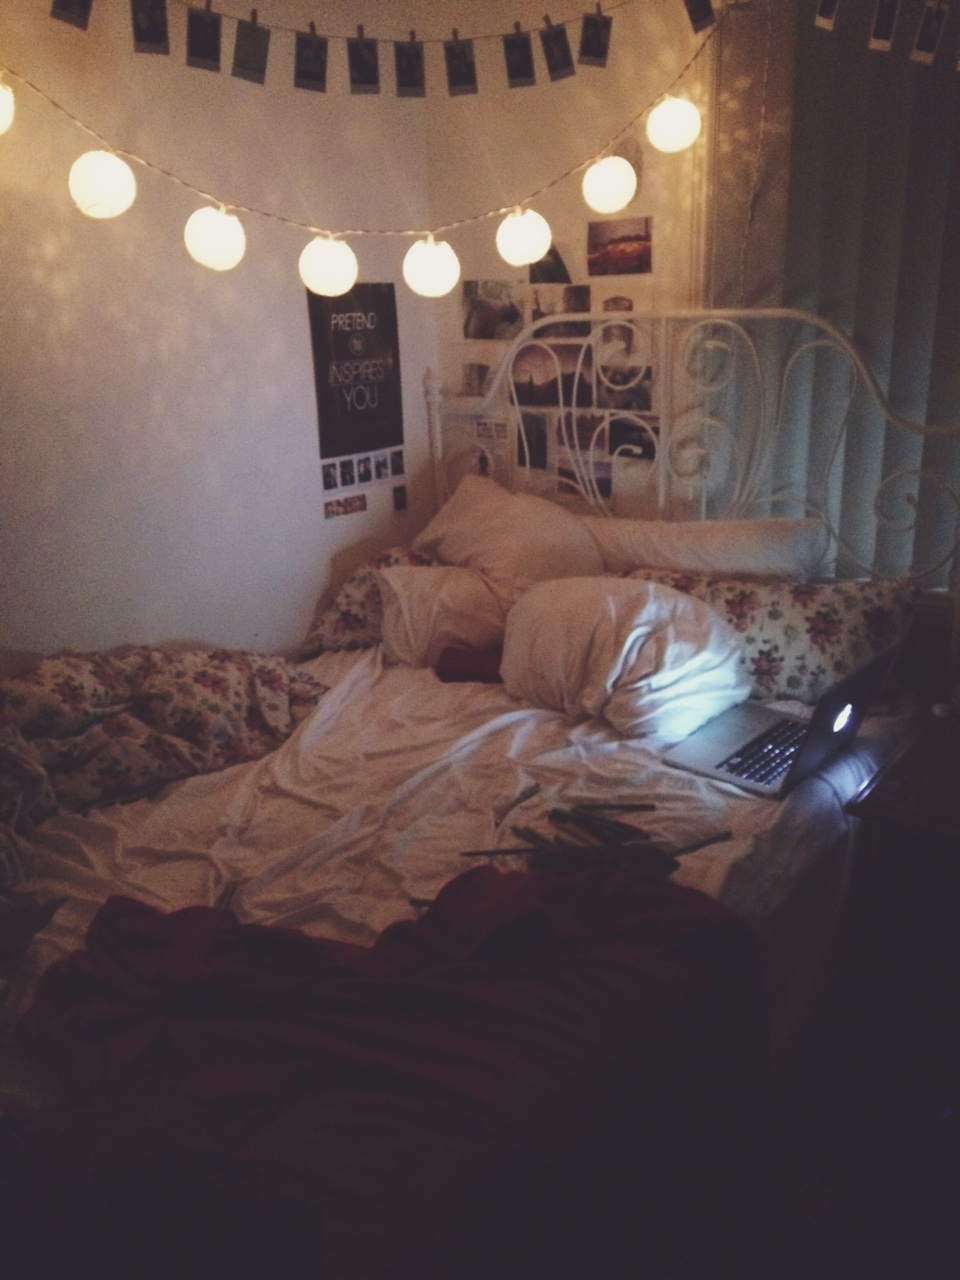 Tags for this image include room light bedroom tumblr and grunge - 78 Images About Tumblr Grunge Rooms On We Heart It See More About Room Bedroom And Bed